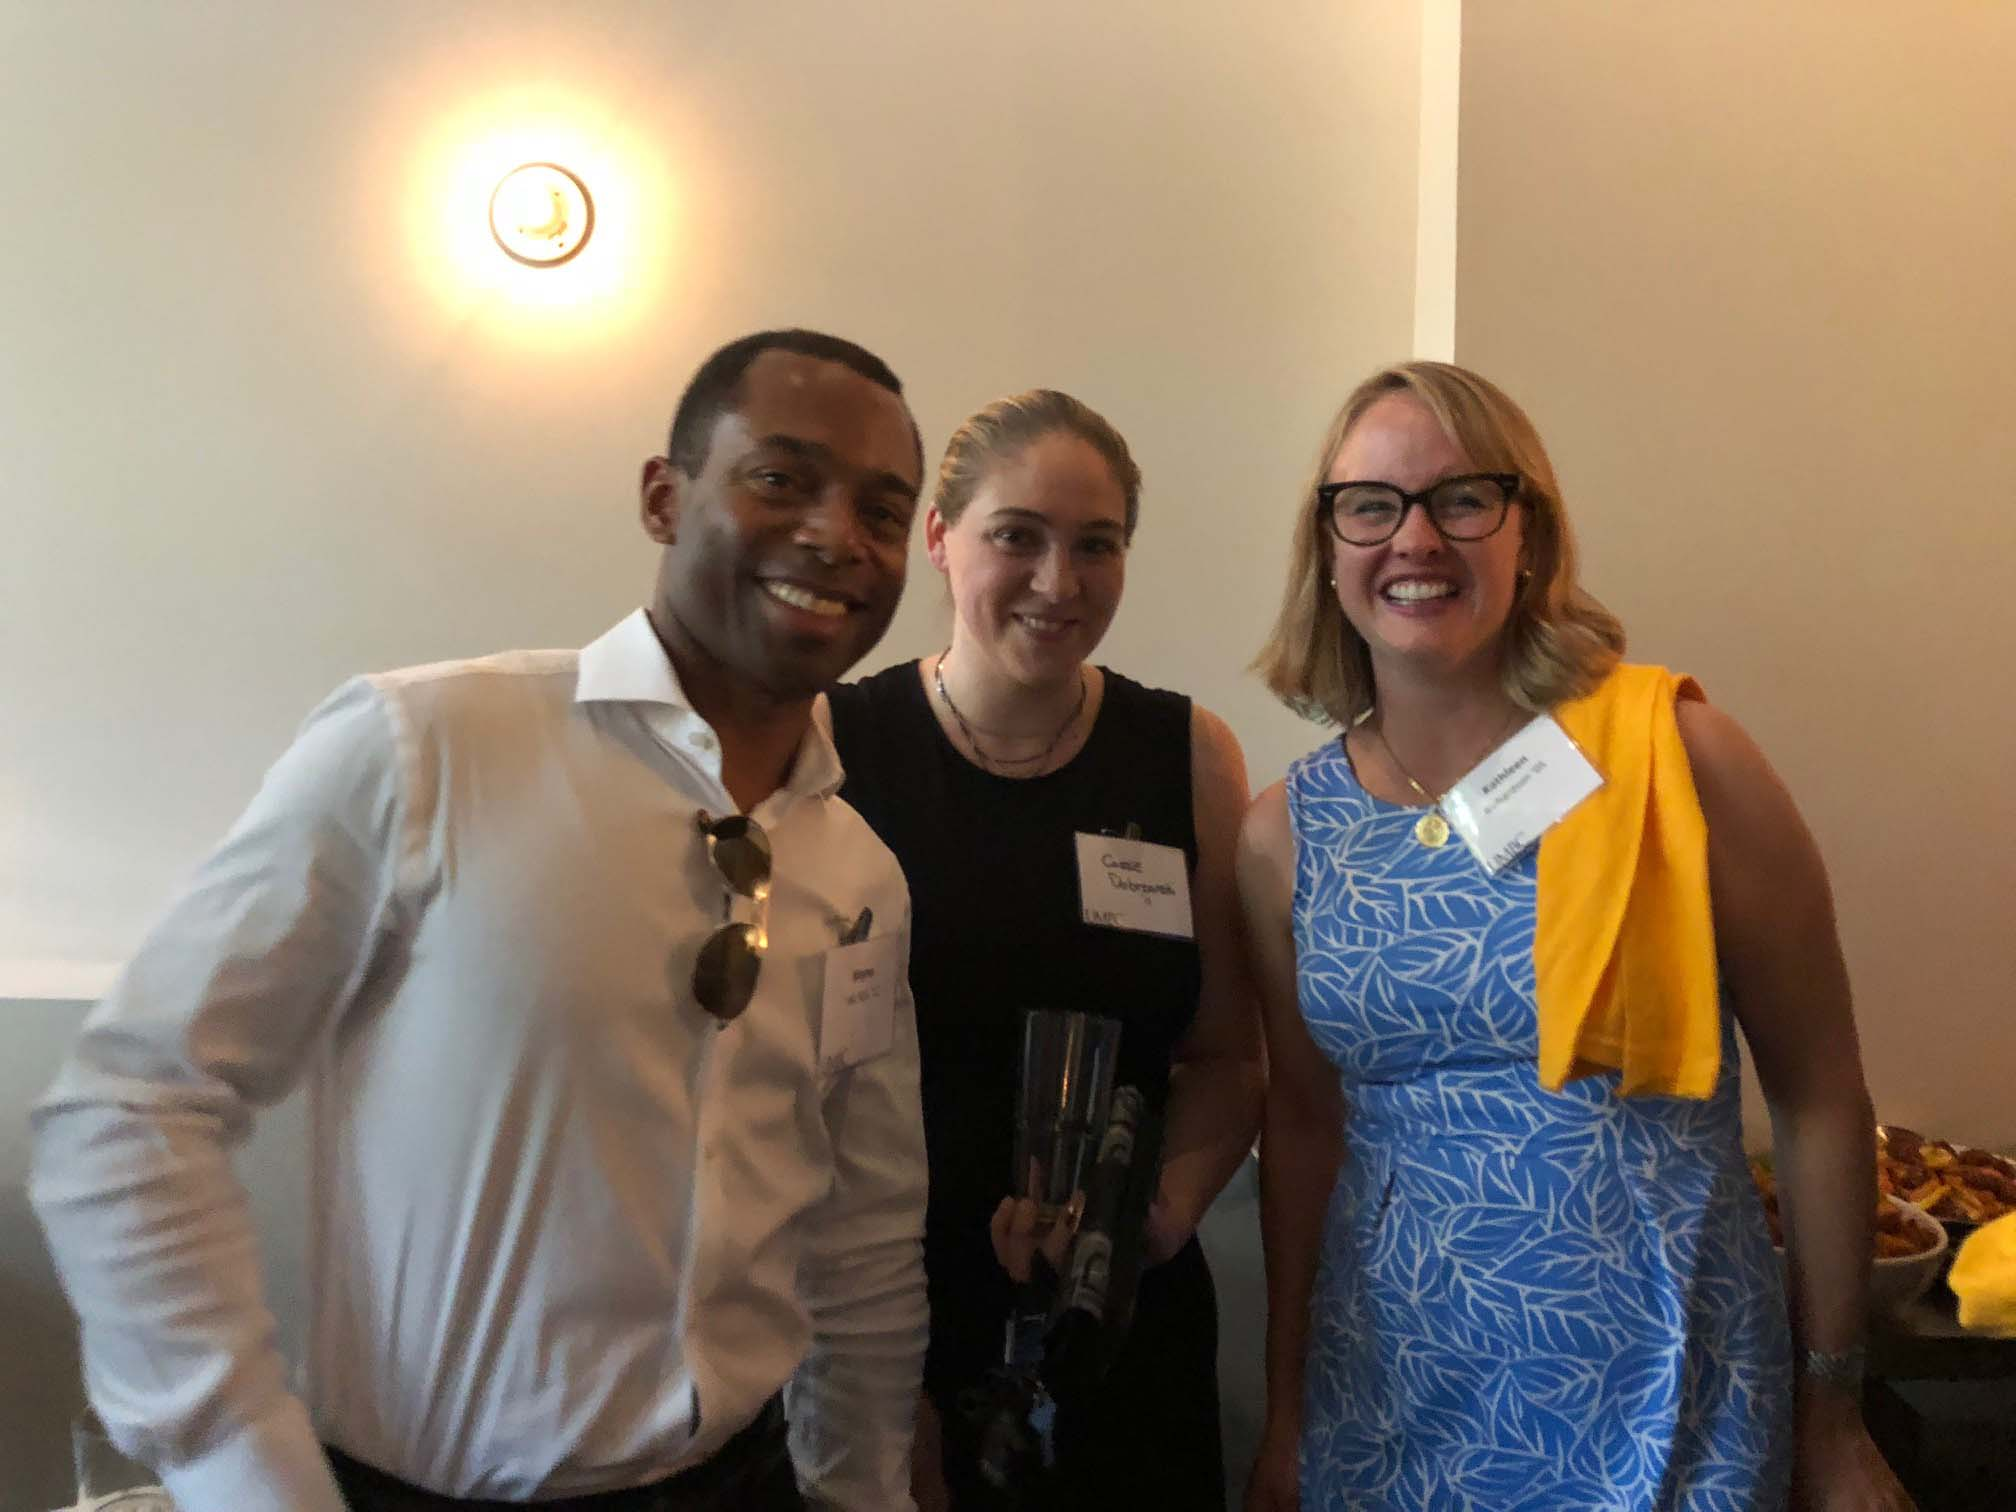 Three alumni smile together at networking event